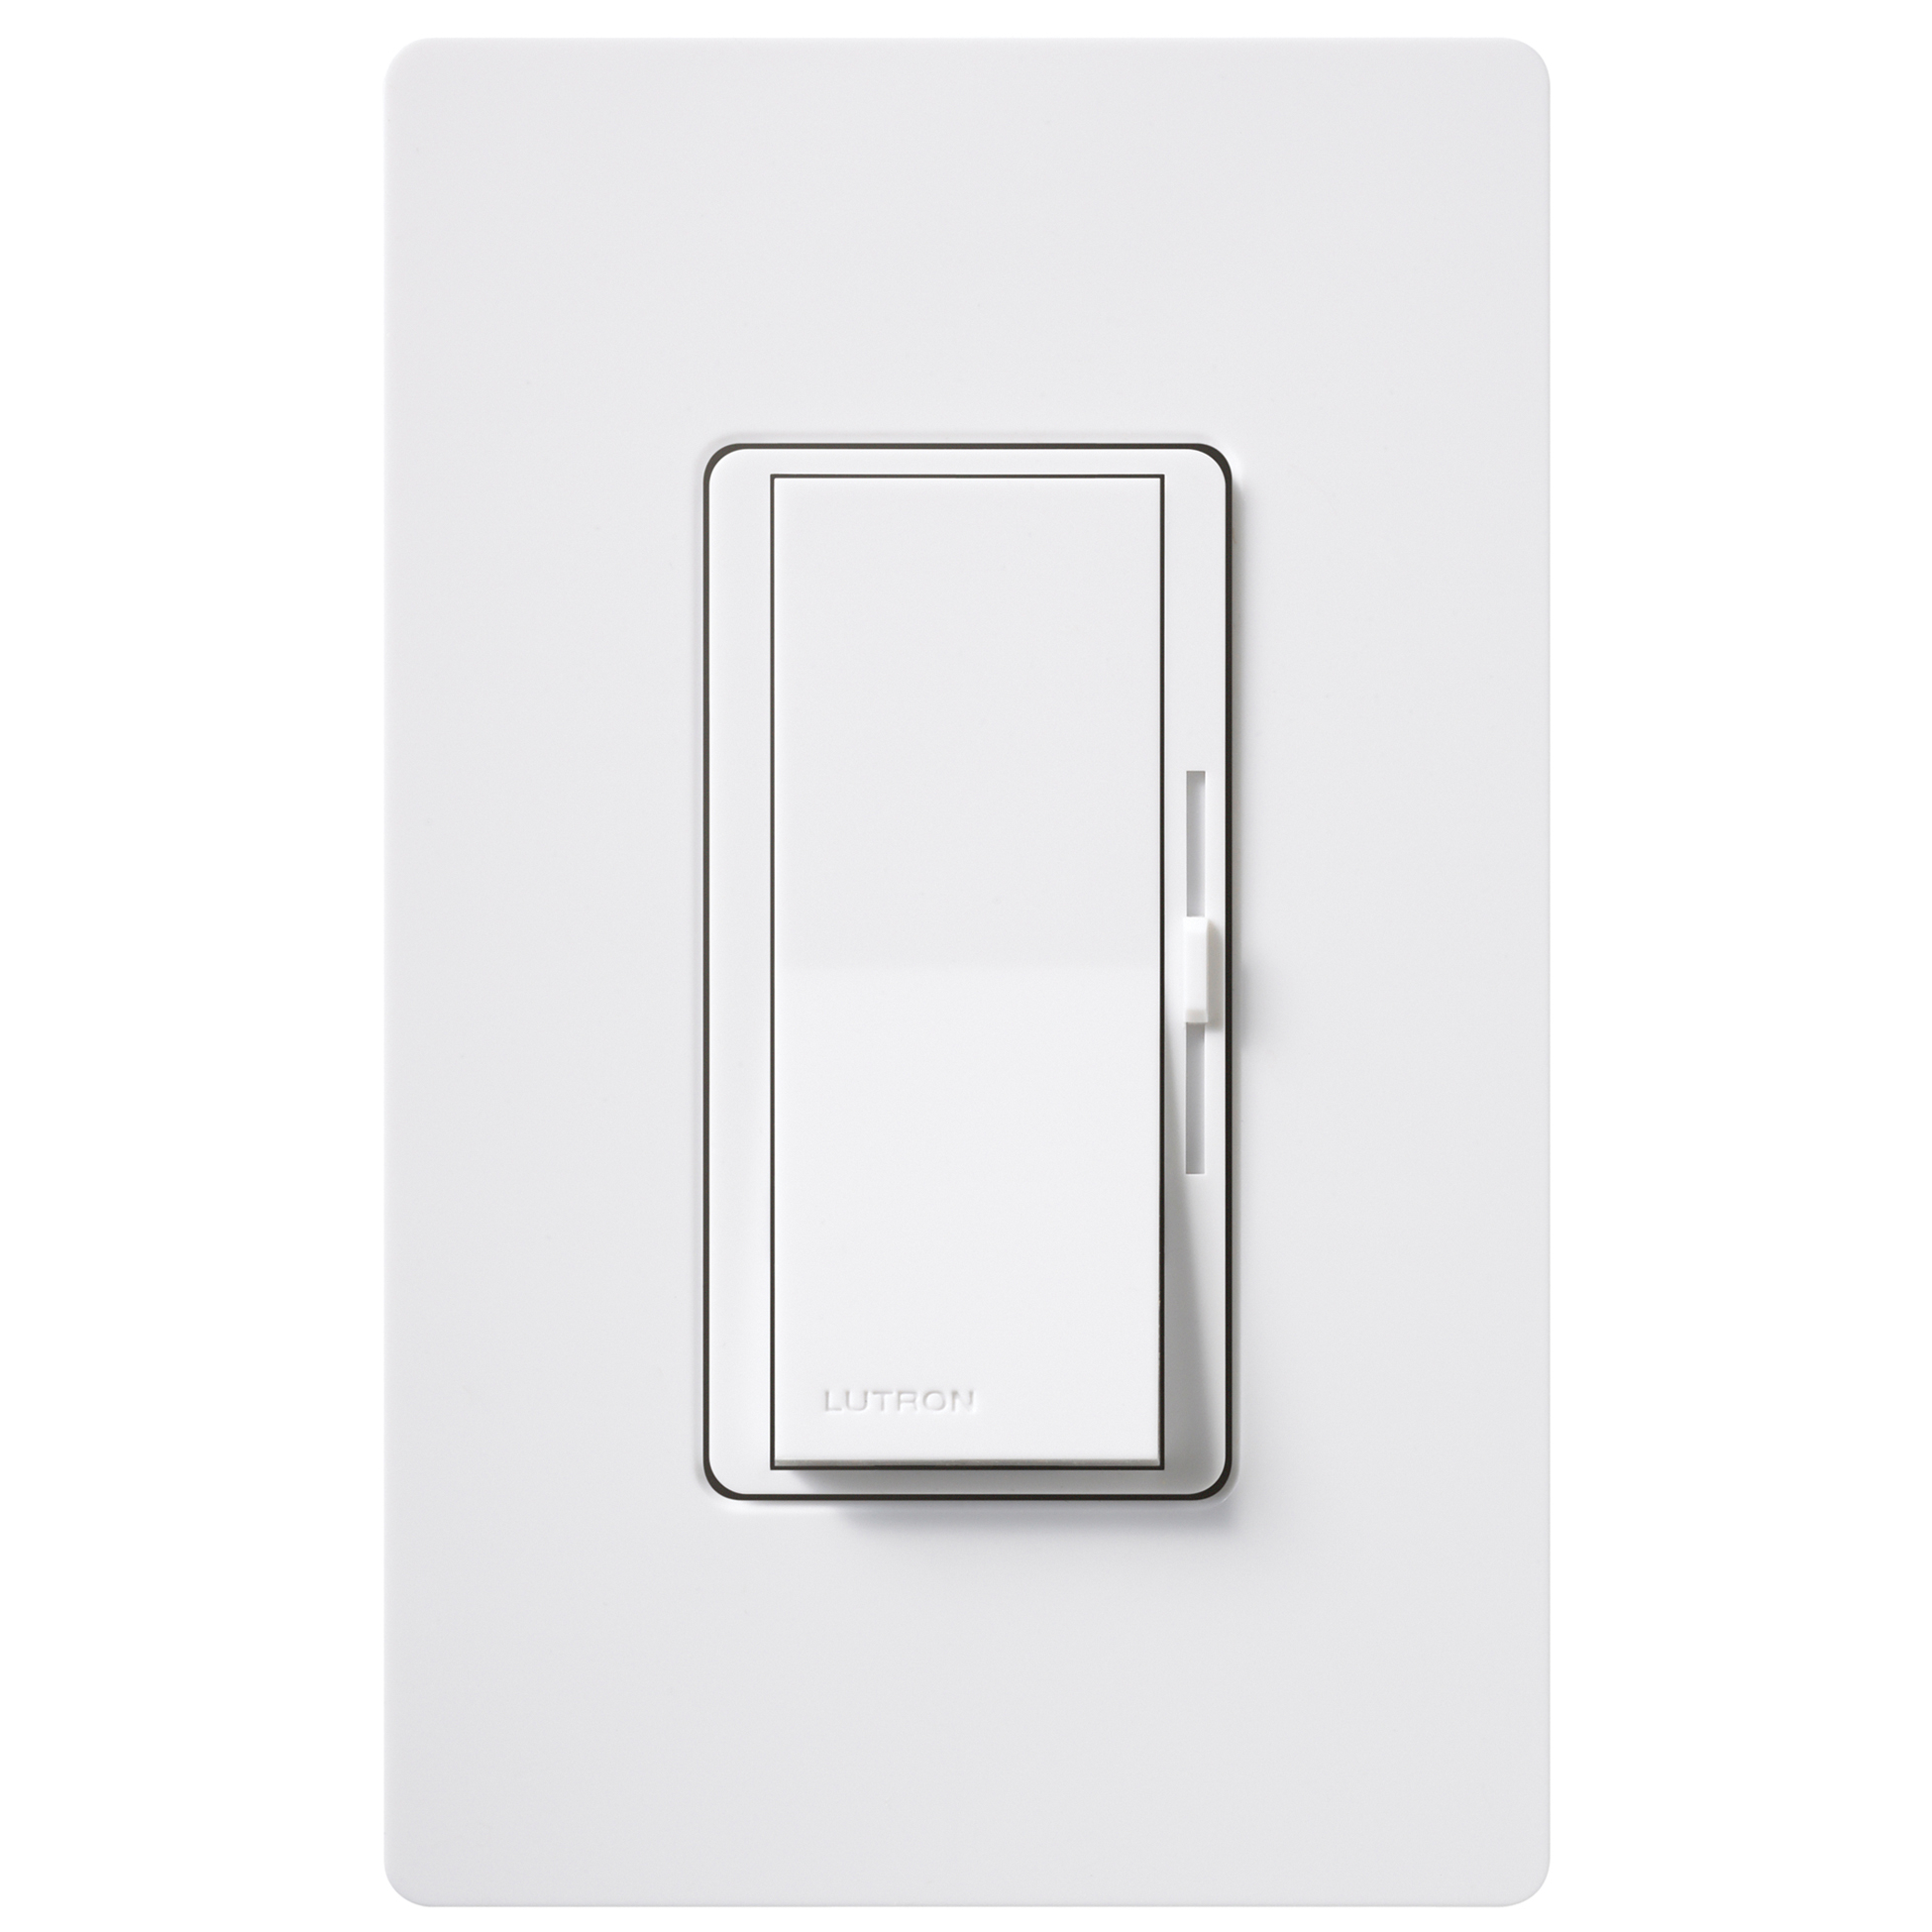 Lutron DVWCL-153PH-WH White Single Pole Or 3 Way CFL LED Dimmer With Wall Plate by LUTRON ELECTRONICS CO